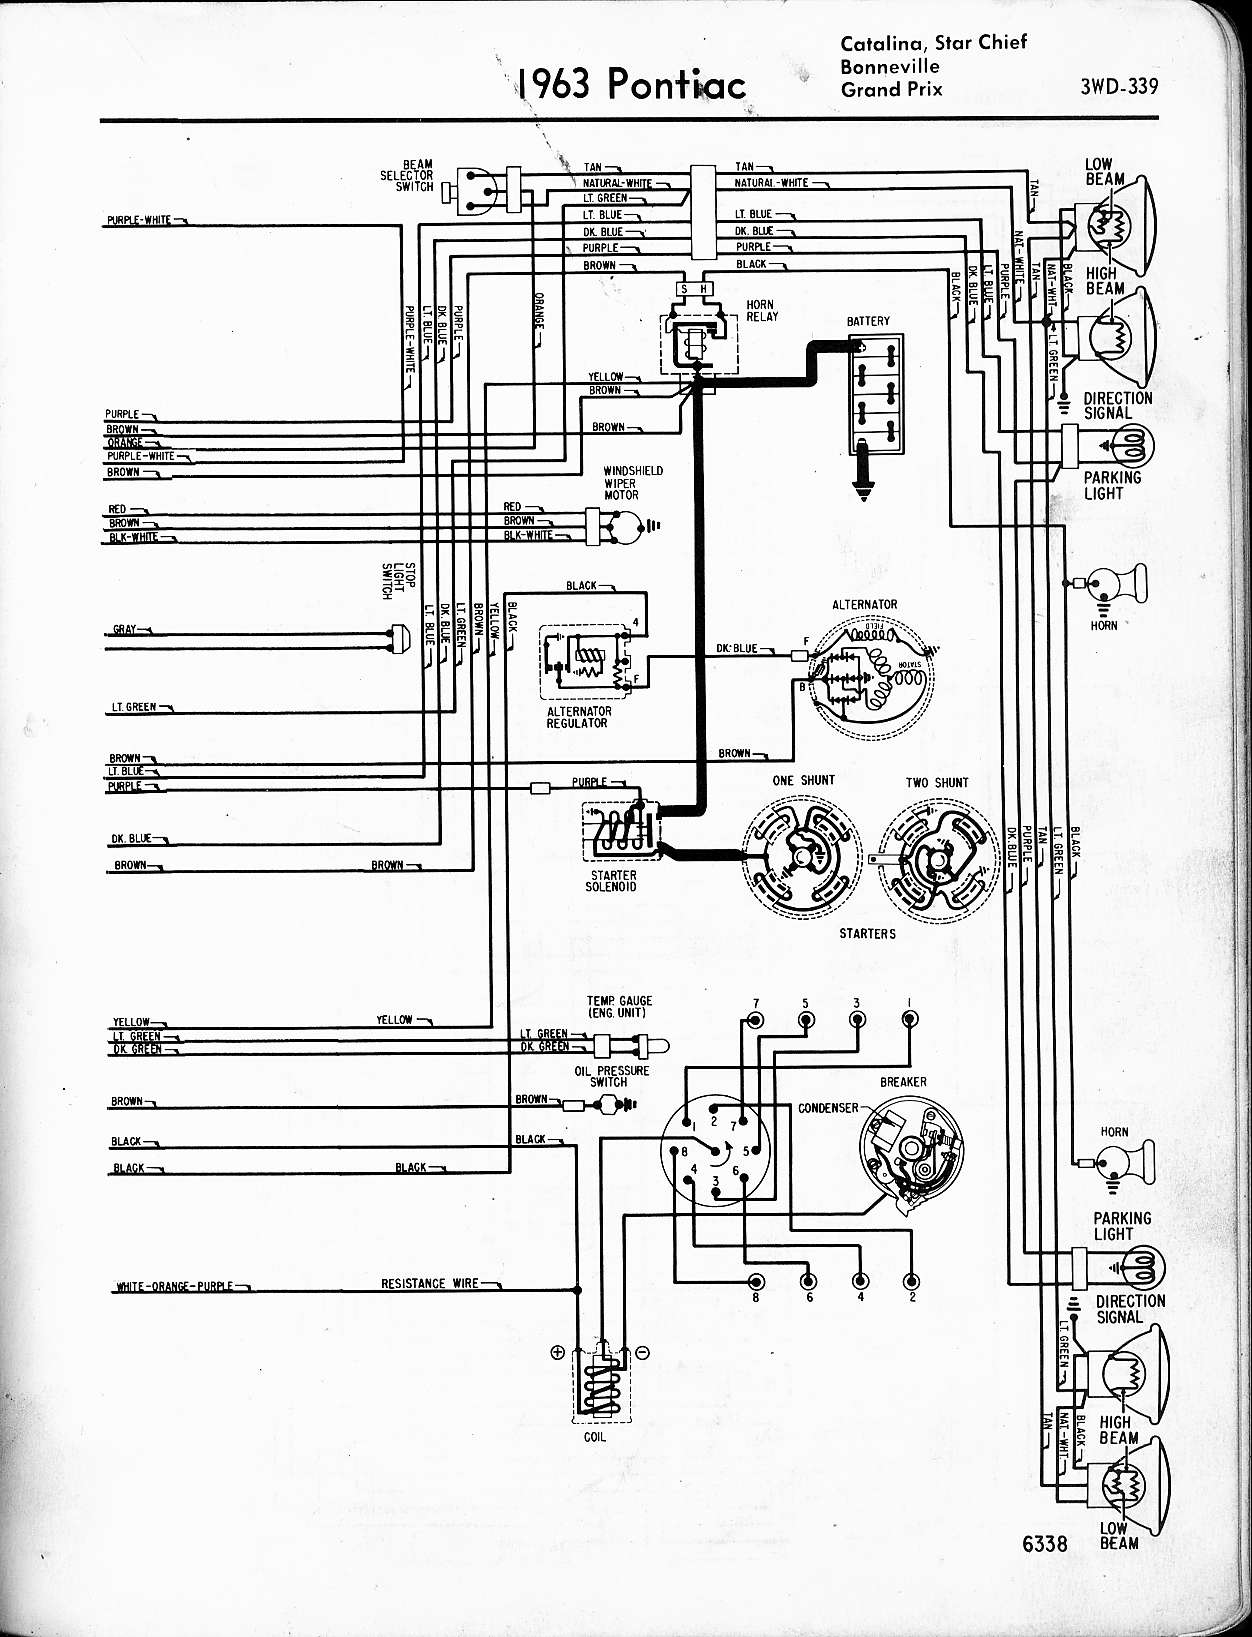 Wiring Diagram For Pontiac Bonneville Opinions About 1995 Fuse Box Wallace Racing Diagrams Rh Wallaceracing Com Ssei 2003